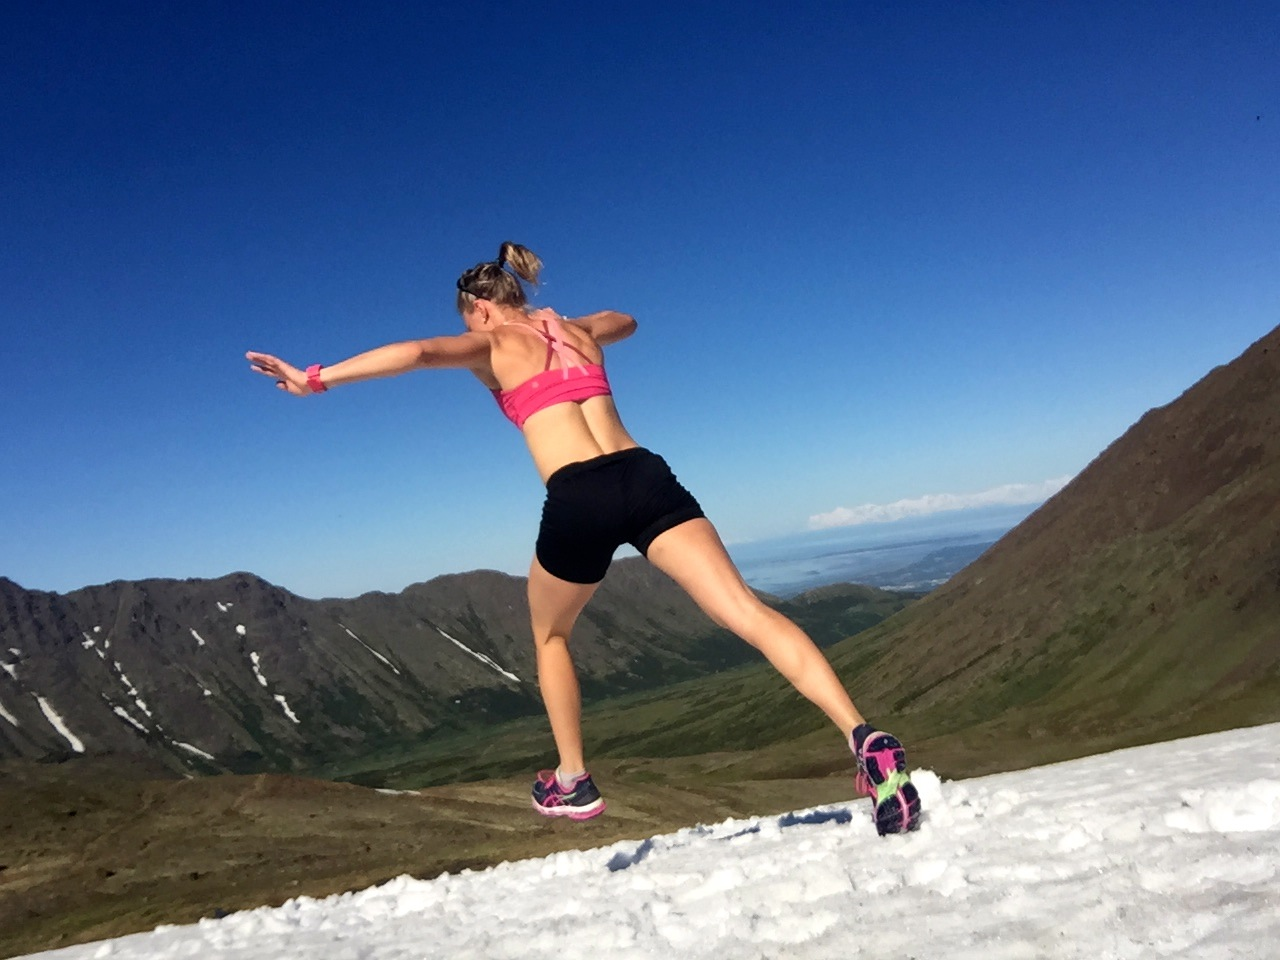 Running in the mountains, and still finding snow!